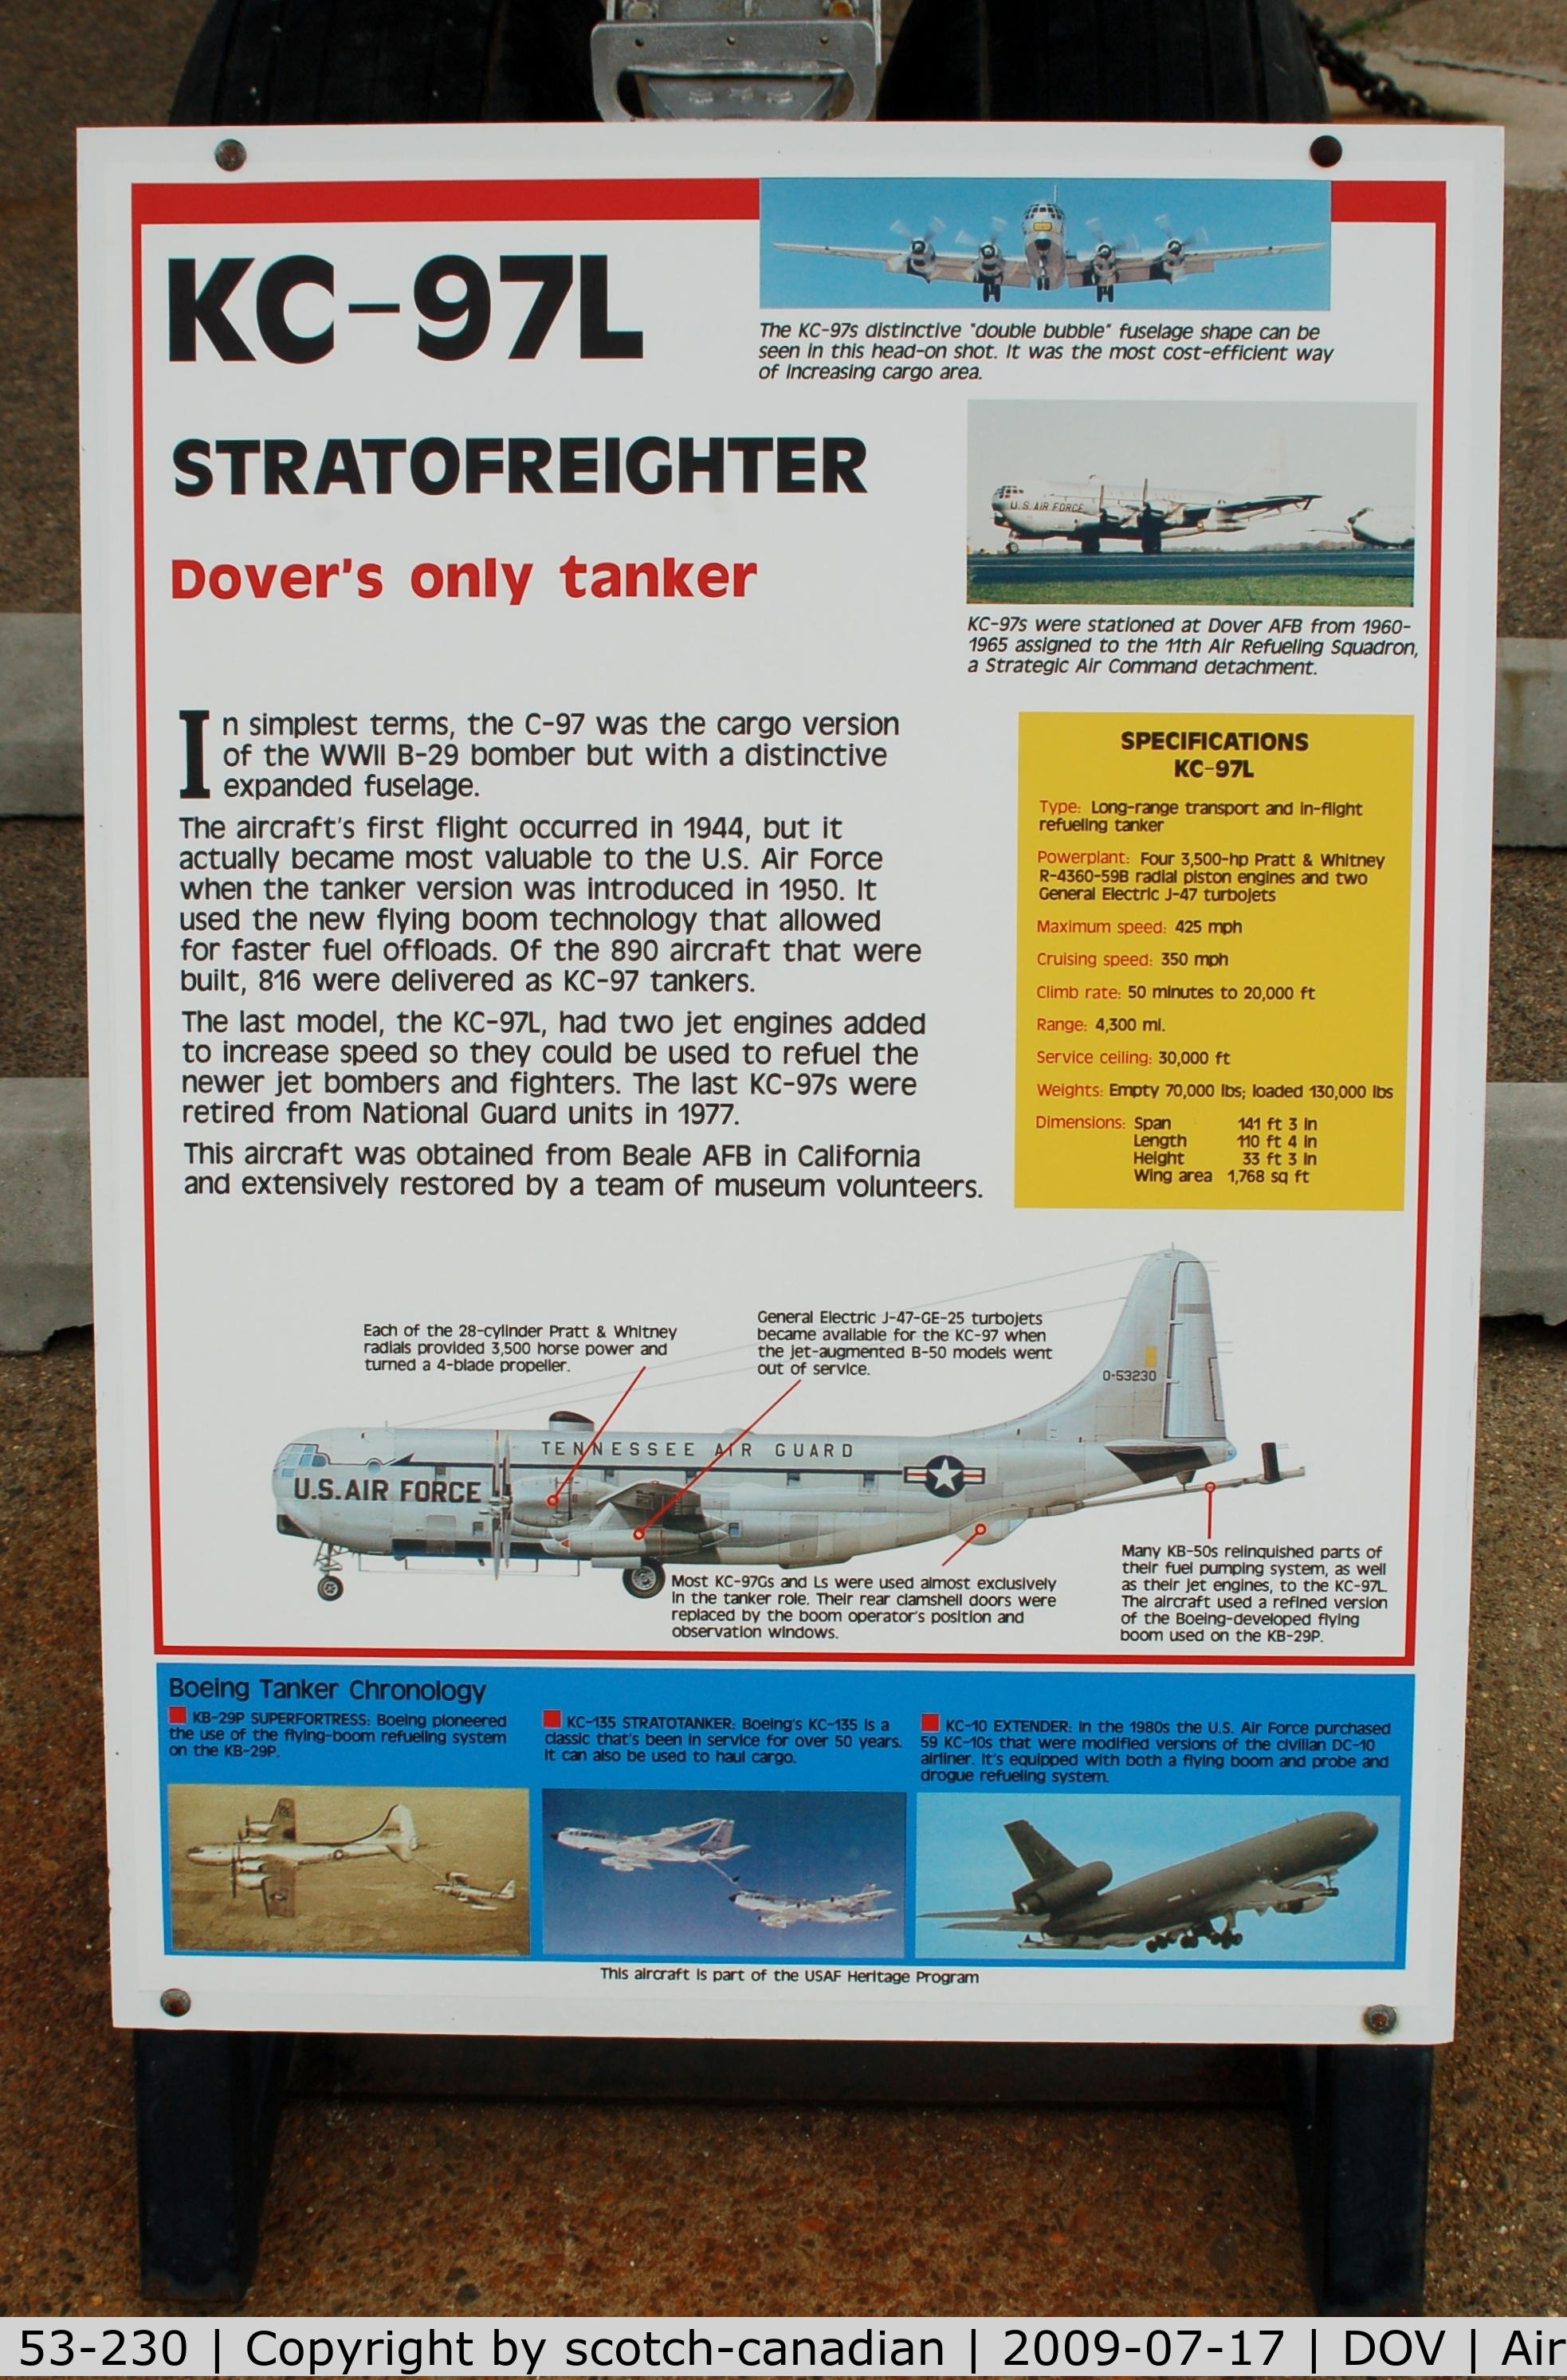 53-230, Boeing KC-97L Stratofreighter C/N 17012, Information Plaque for the Boeing KC-97L Stratotanker at the Air Mobility Command Museum, Dover AFB, DE